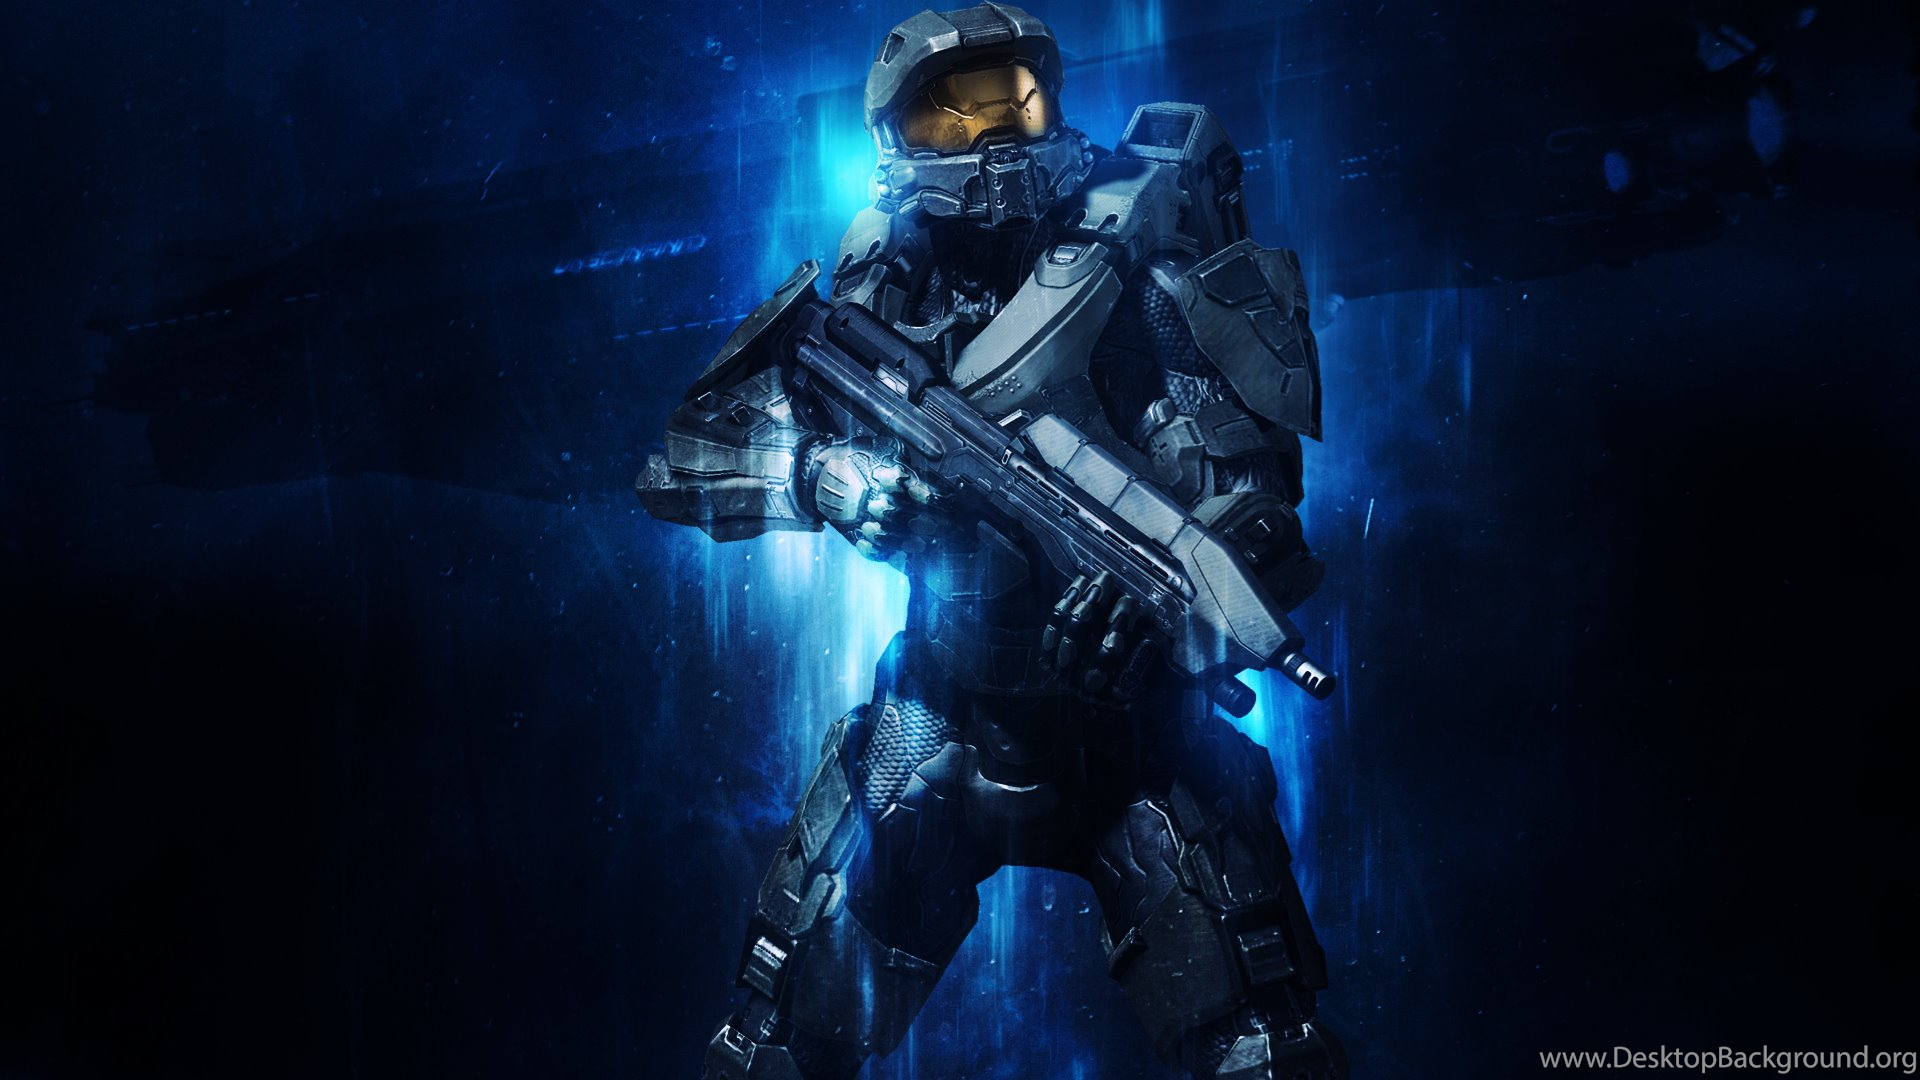 Master Chief Halo 5 Guardians Wallpapers Hd Wallpapers Desktop